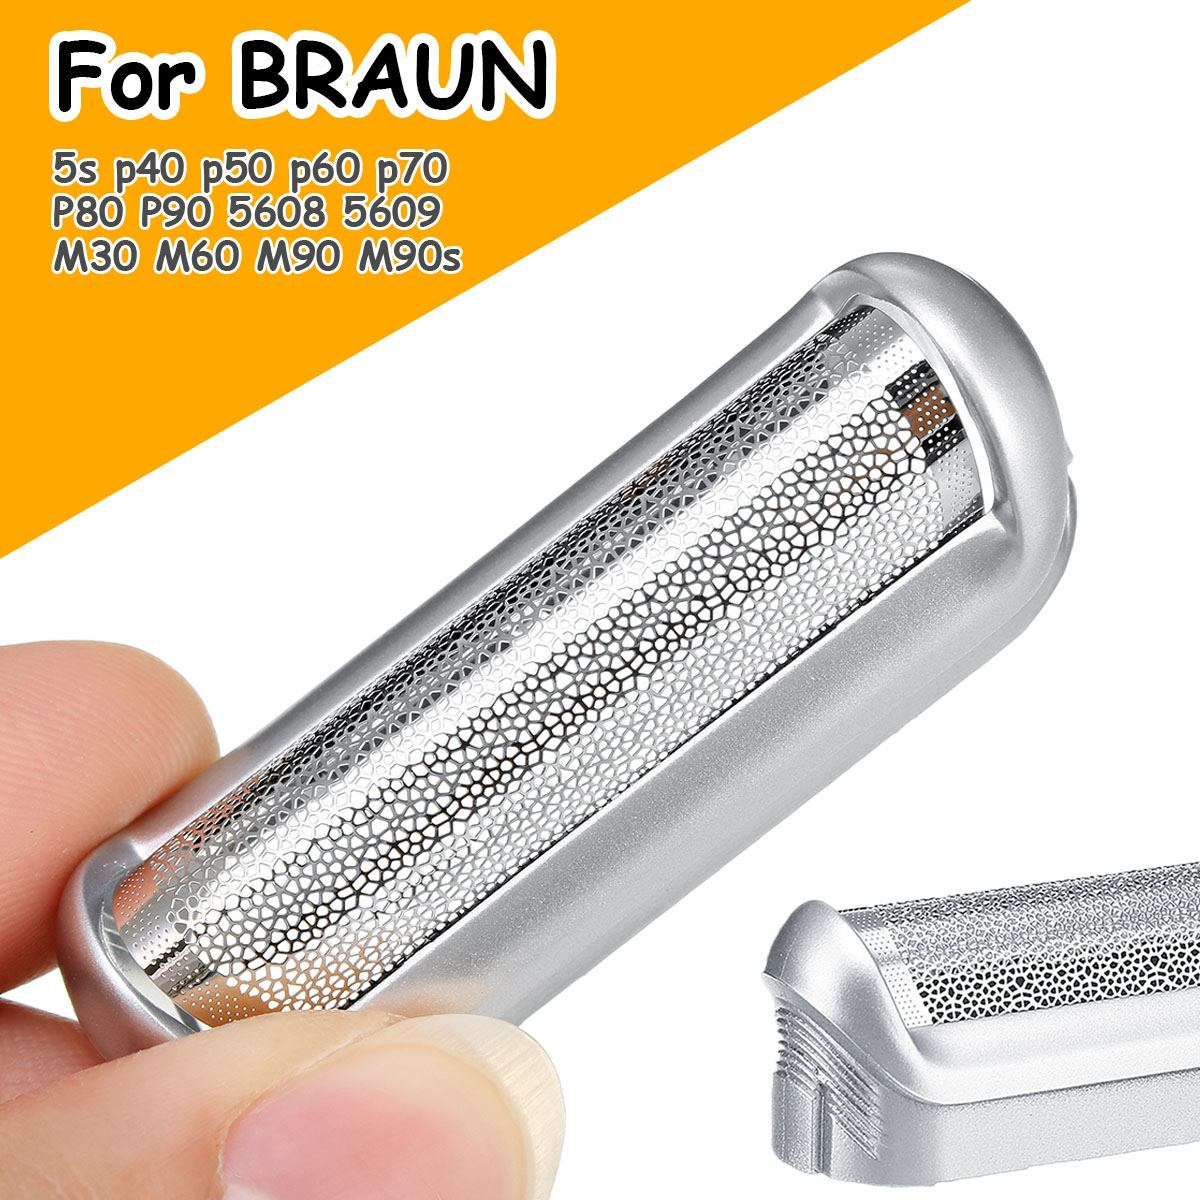 Shaver Replacement Head Foil Frame For BRAUN 5S For CruZer Twist P40 P50 P60 P70 P80 P90 5608 5609 550 575 M30 M60b M90 Shaver